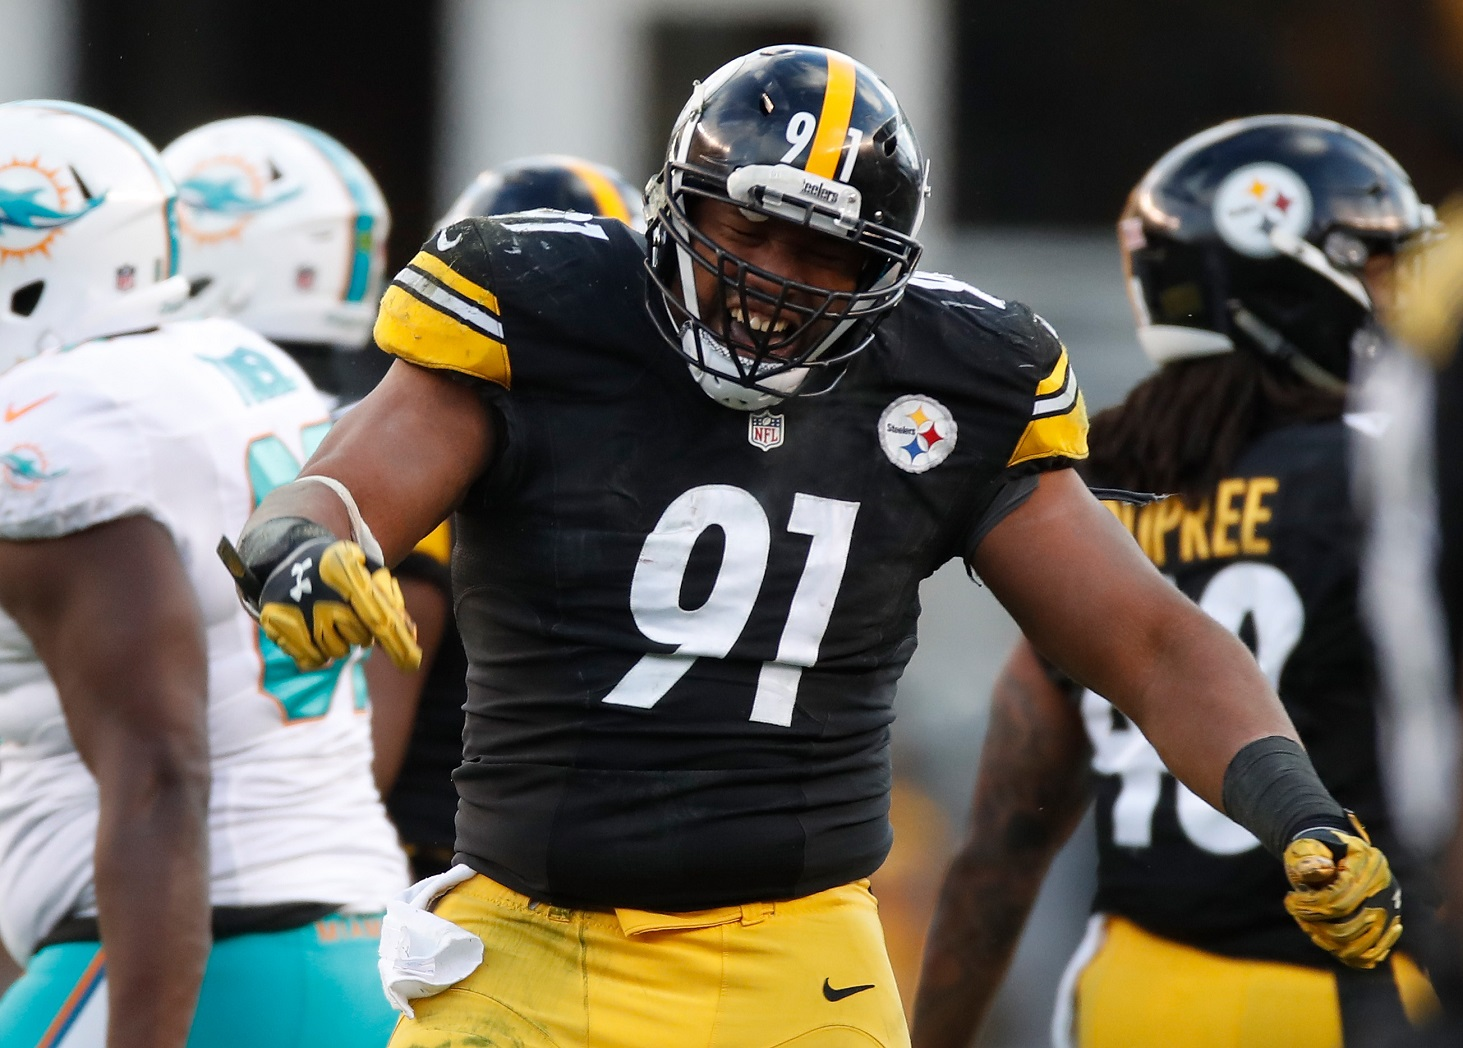 Stephon Tuitt Pittsburgh Steelers LE NFL and PFF stats